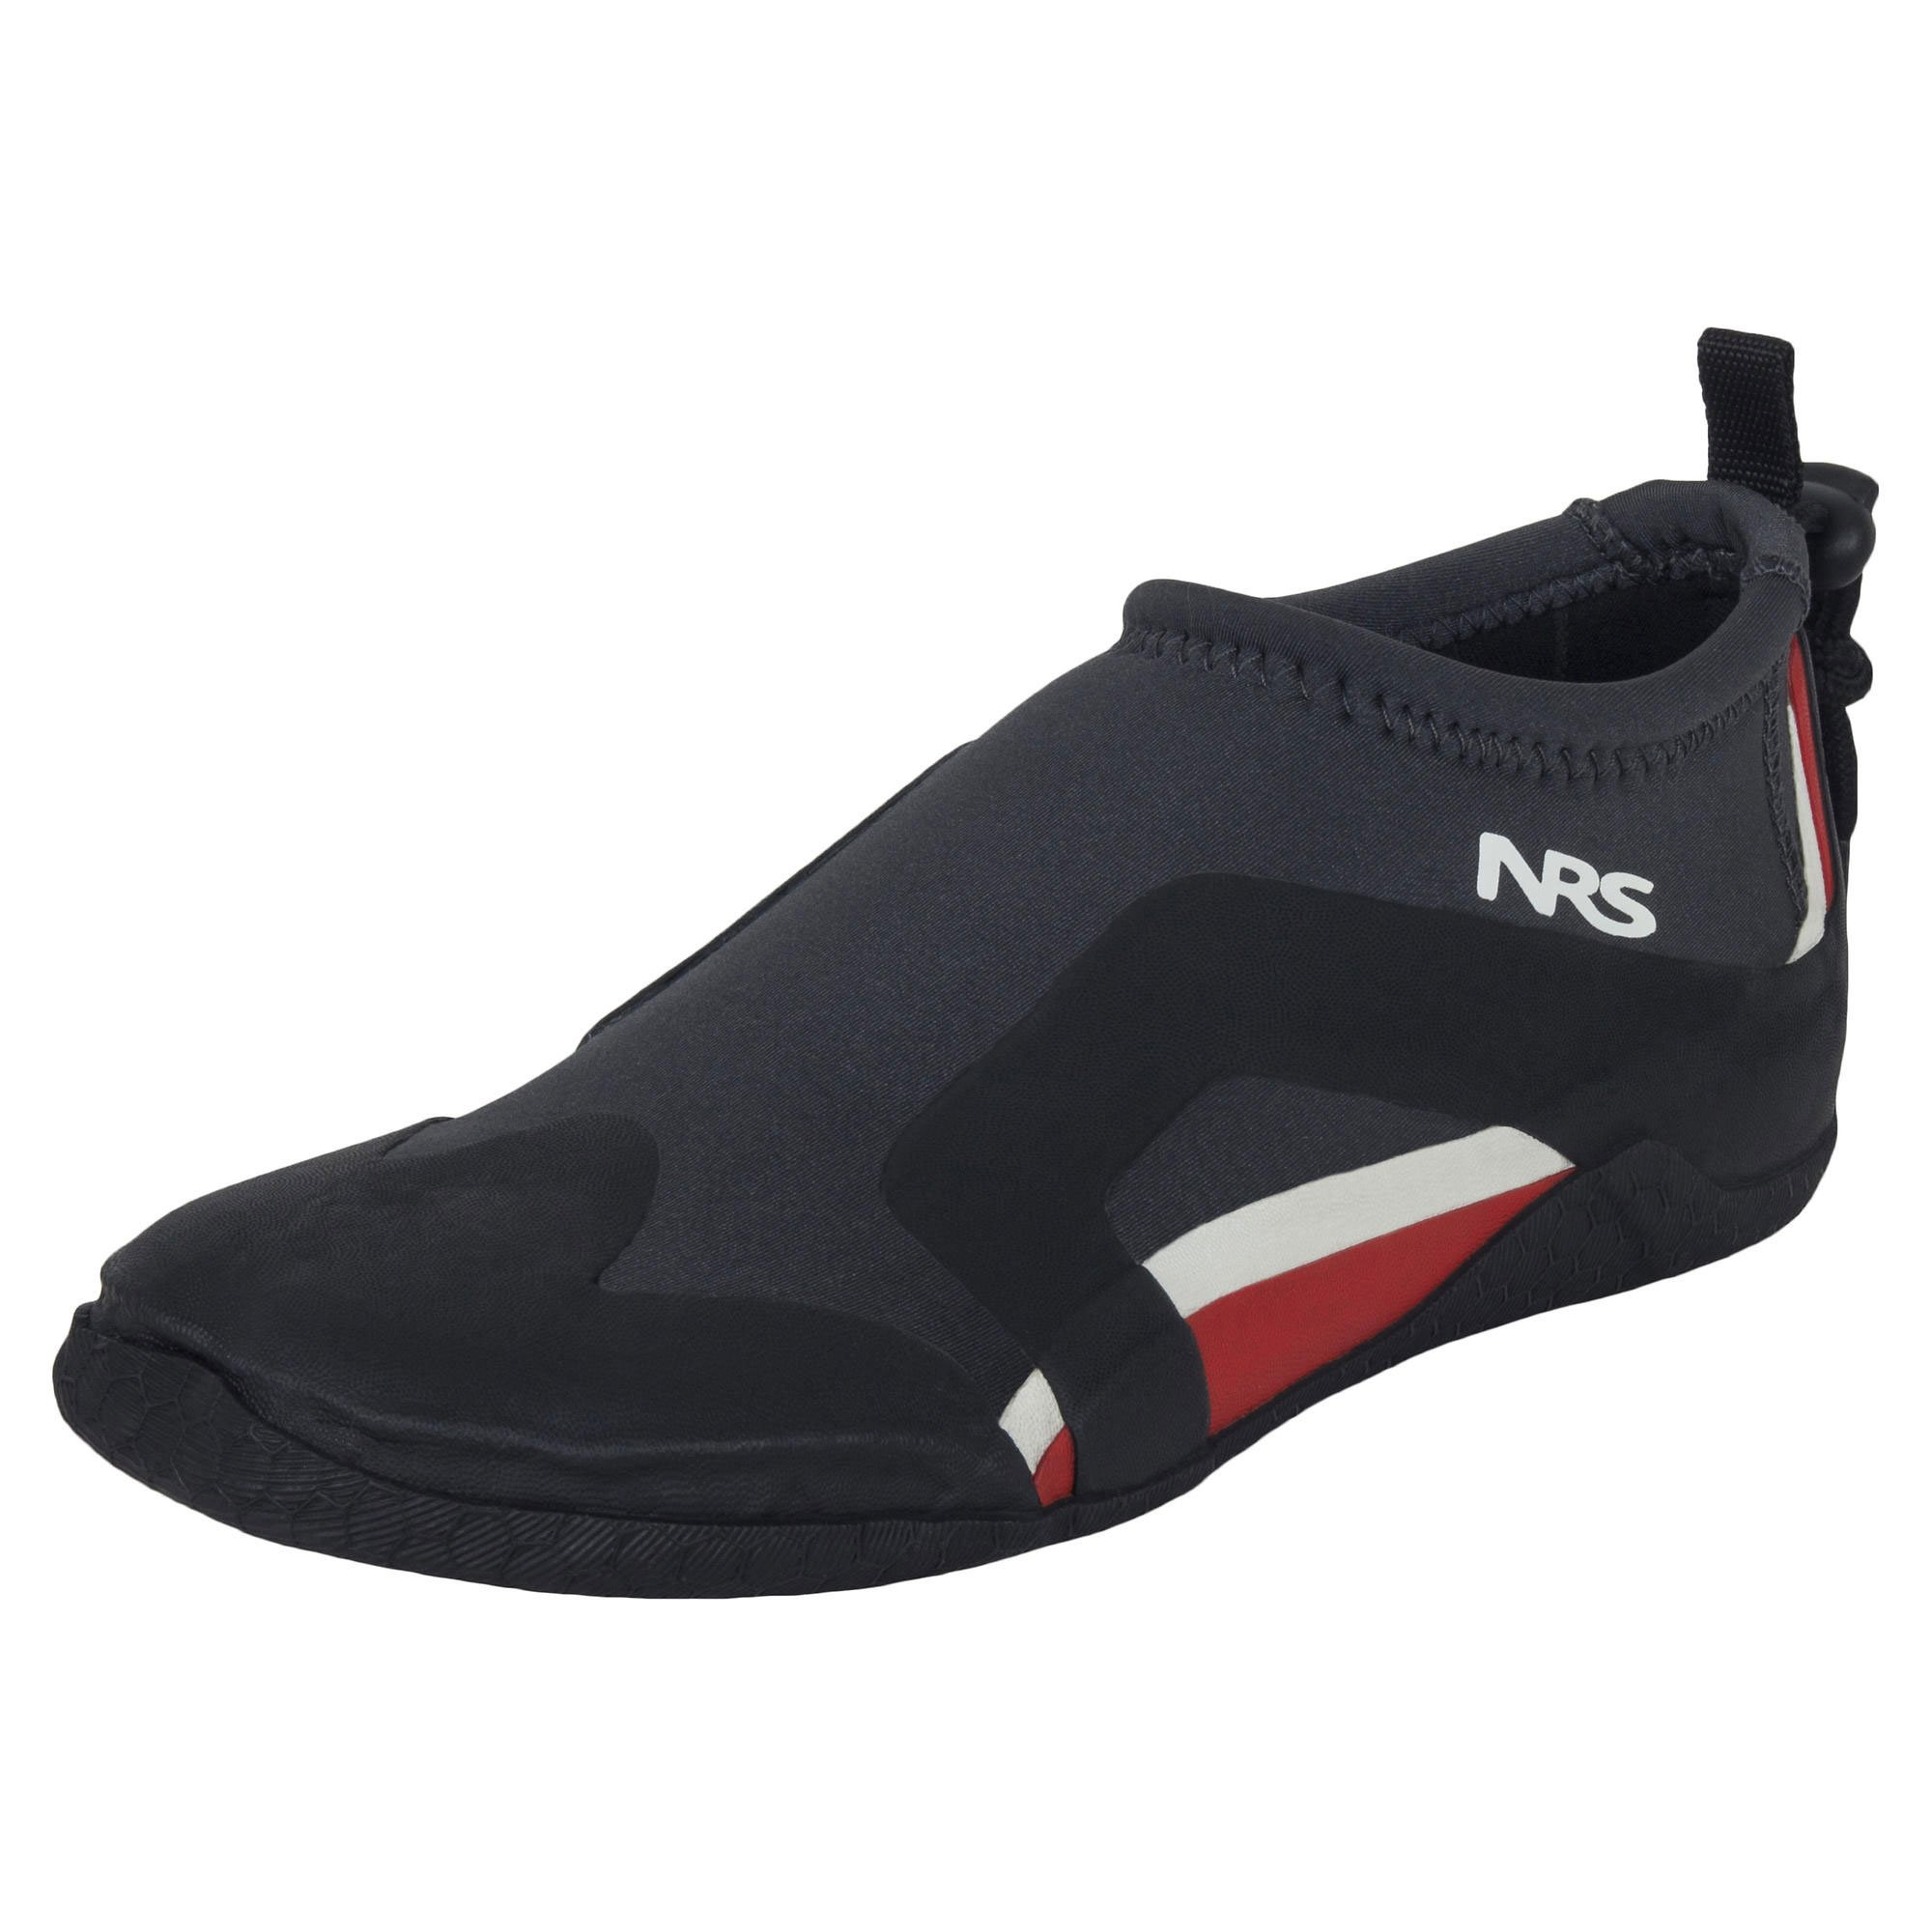 NRS Kinetic Water Shoe - Men's, Black/Red, 6, 30042.01.101 by NRS